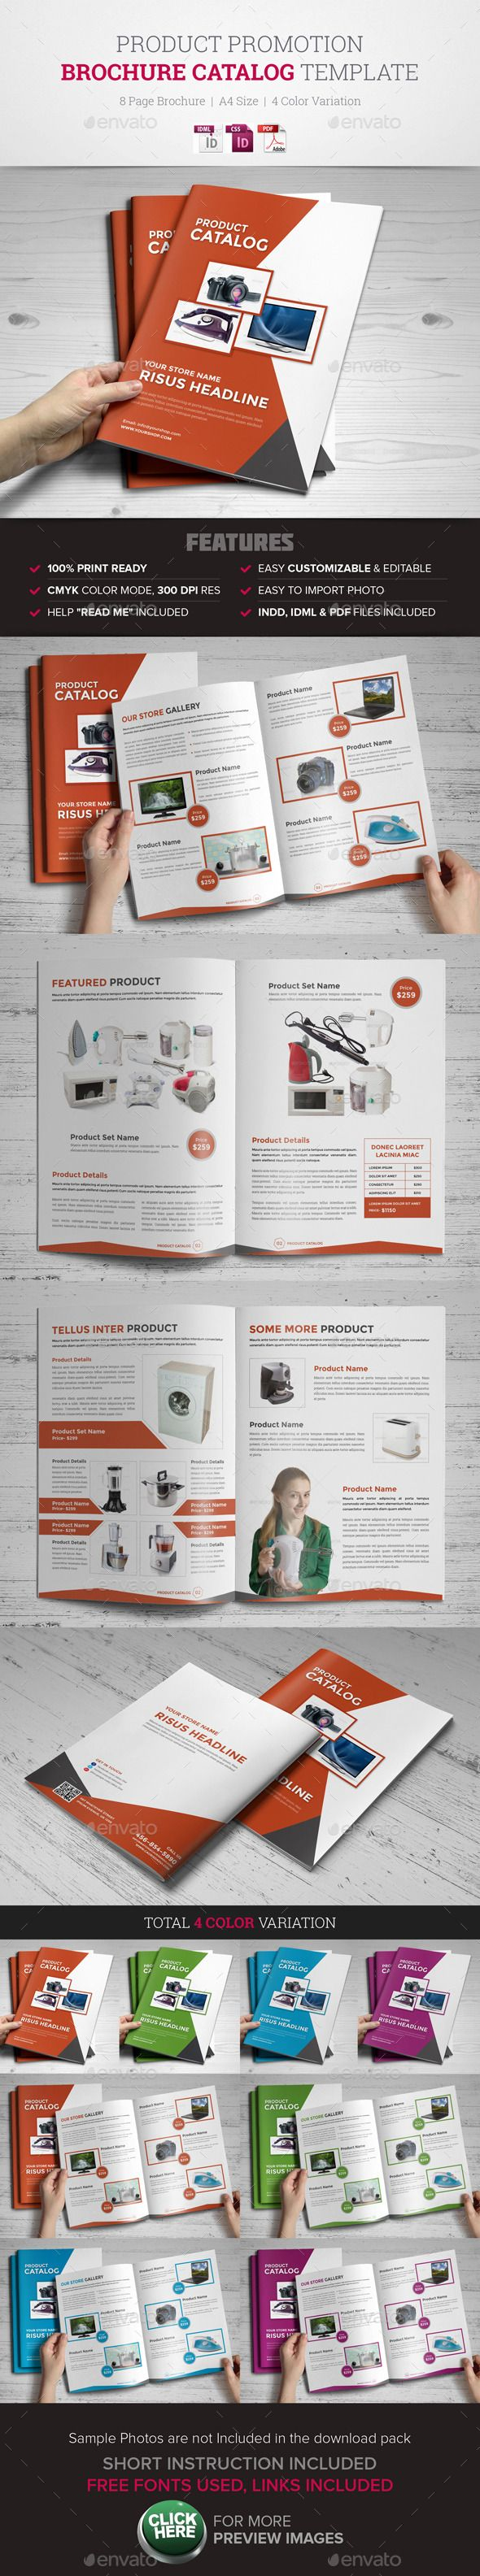 Product Promotion Catalog InDesign Template | Indesign templates ...